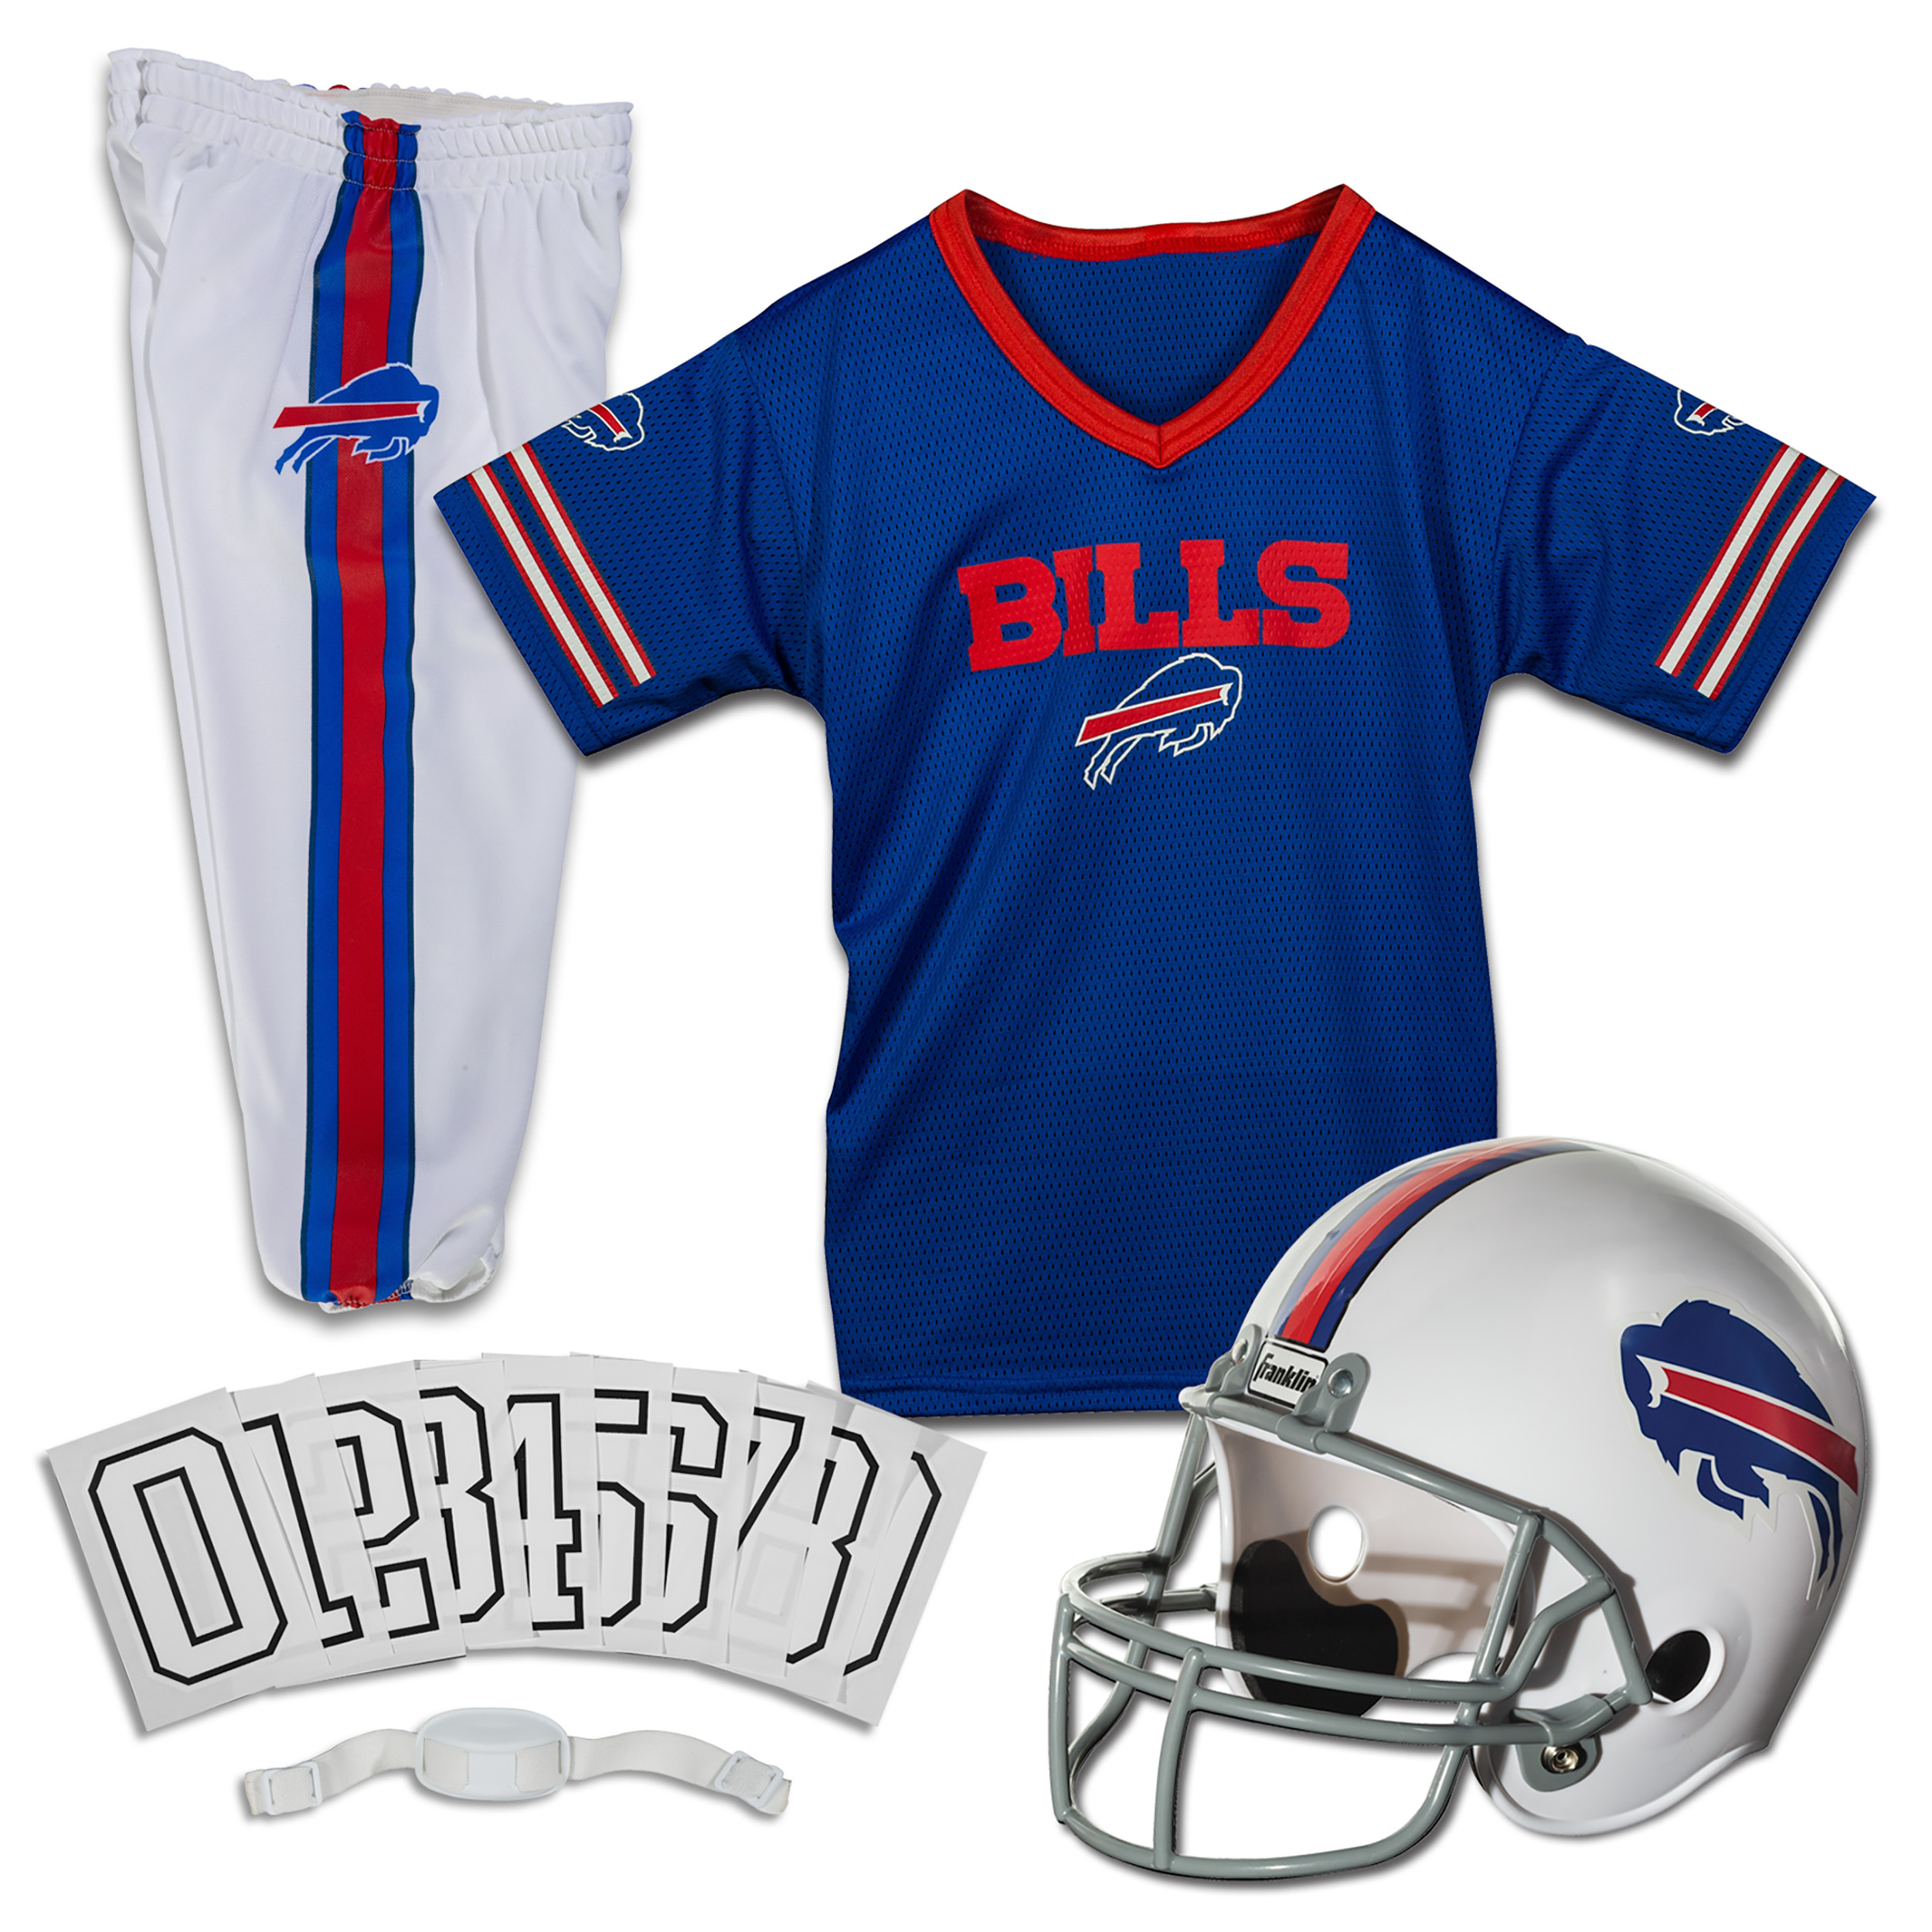 Franklin Sports NFL Youth Deluxe Uniform/Costume Football Set (Choose Team and Size)